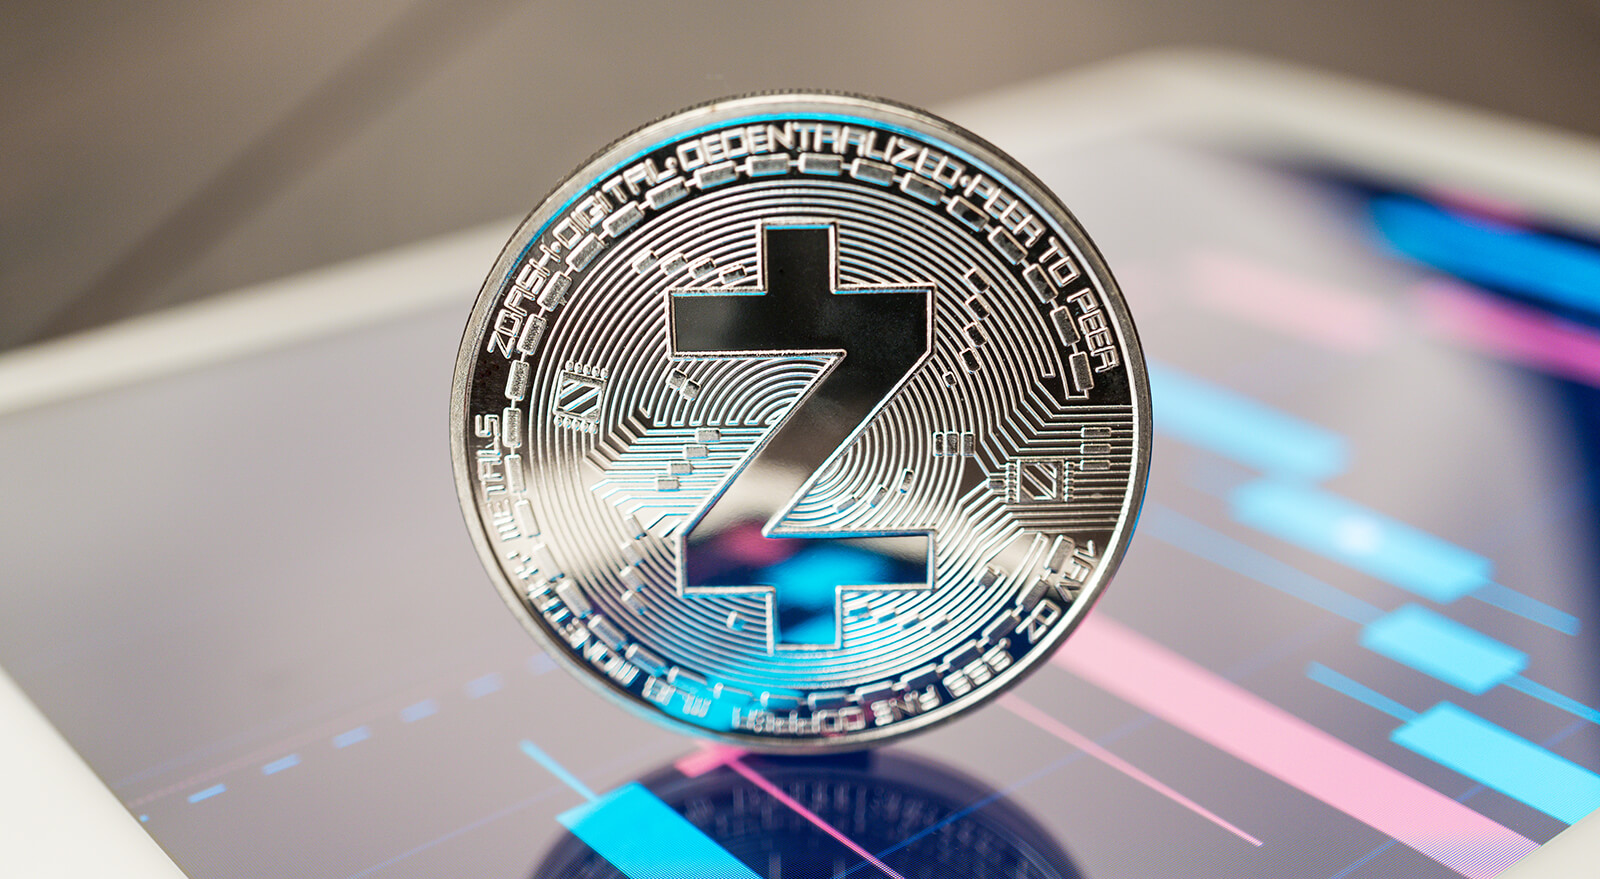 close-up photo of Zcash ZEC cryptocurrency physical coin on the tablet computer showing stock market charts. trading zcash cryptocoin concept on the wooden table